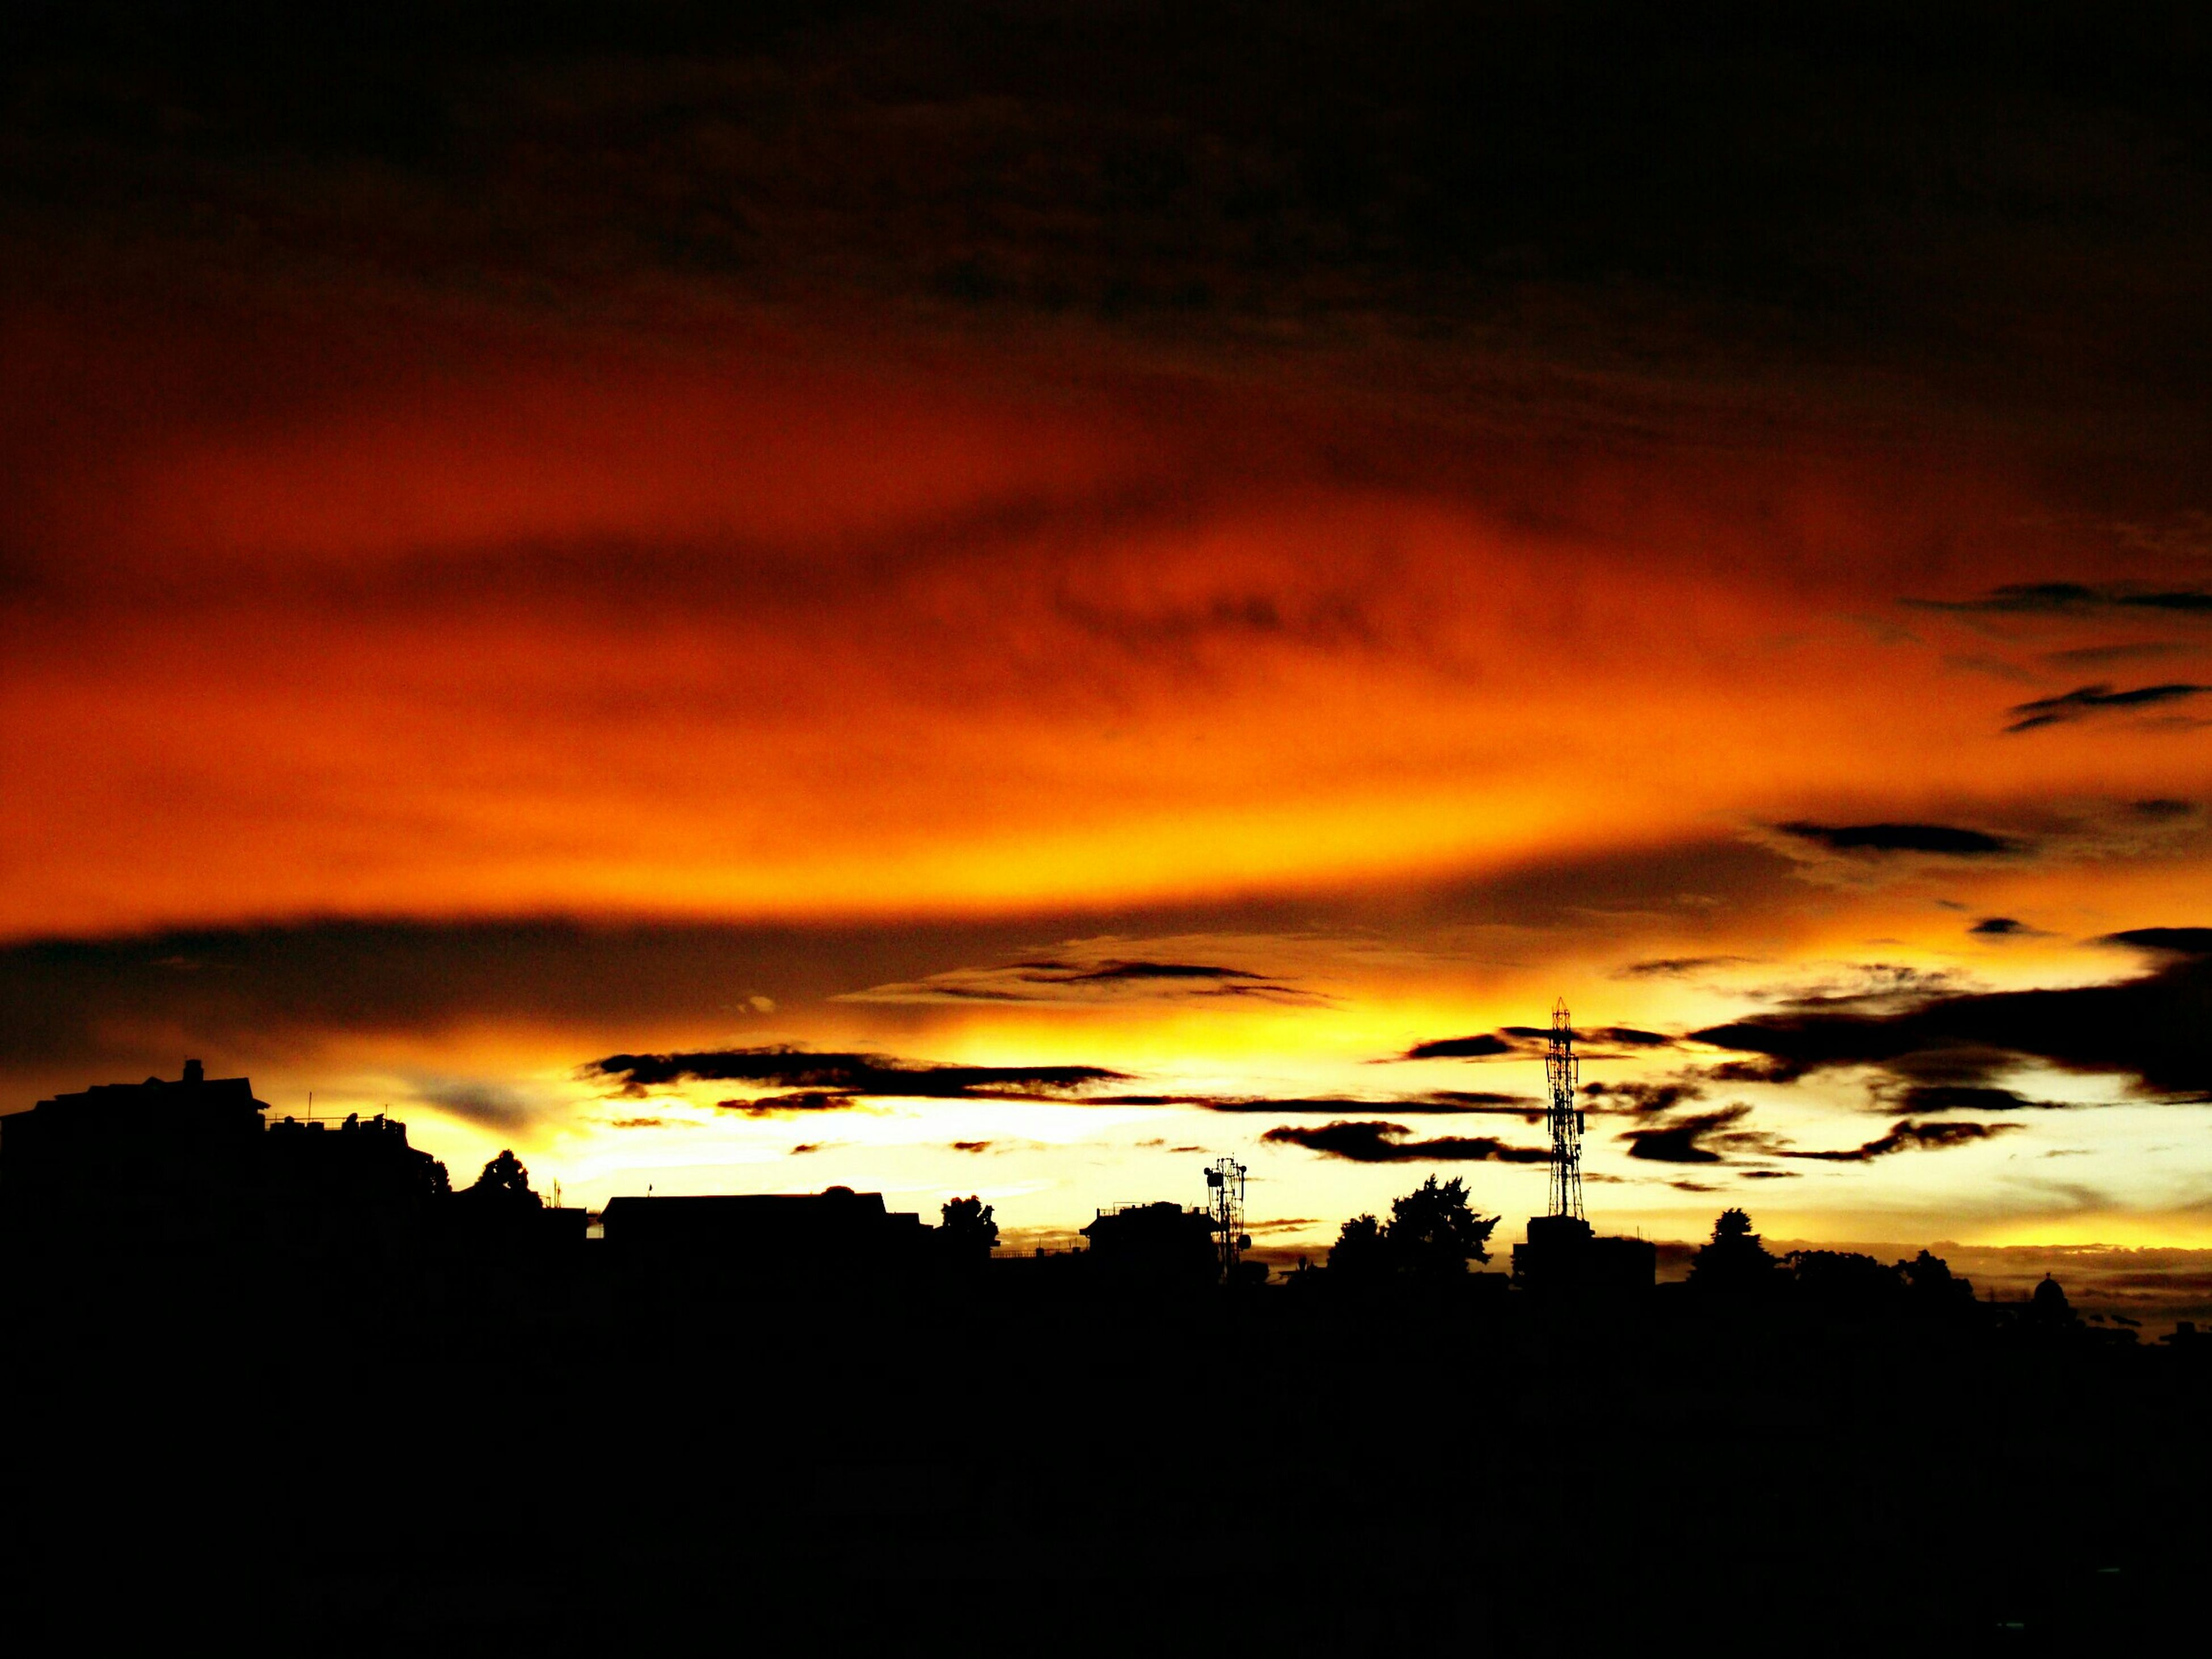 sunset, silhouette, sky, beauty in nature, scenics, orange color, tranquil scene, tranquility, cloud - sky, dramatic sky, nature, idyllic, dark, cloud, moody sky, tree, majestic, landscape, cloudy, outdoors